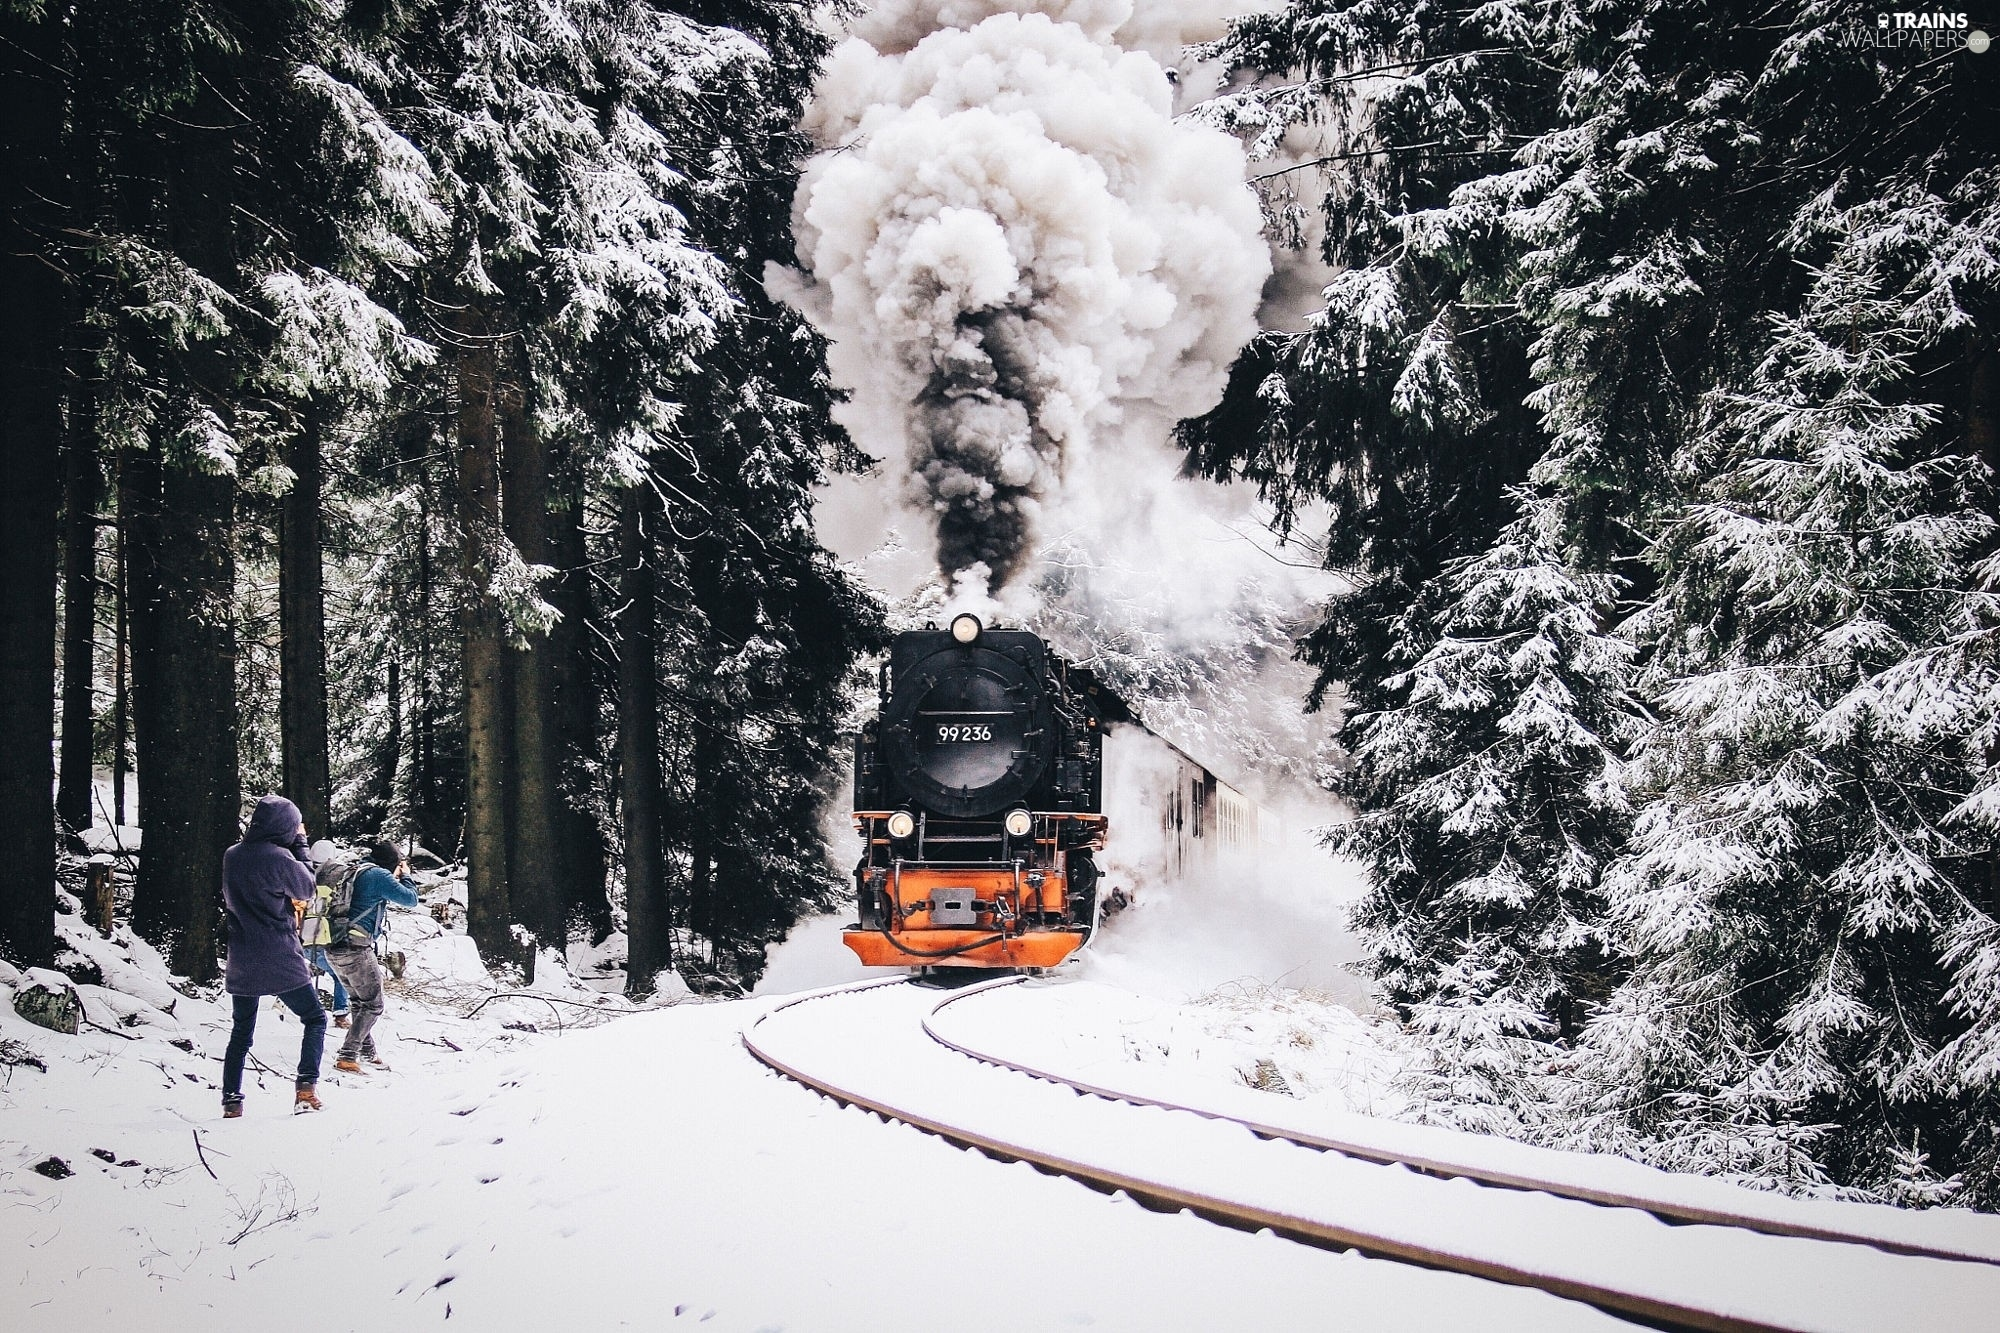 https://www.trains-wallpapers.com/trains/snow-train-winter-people-forest.jpg